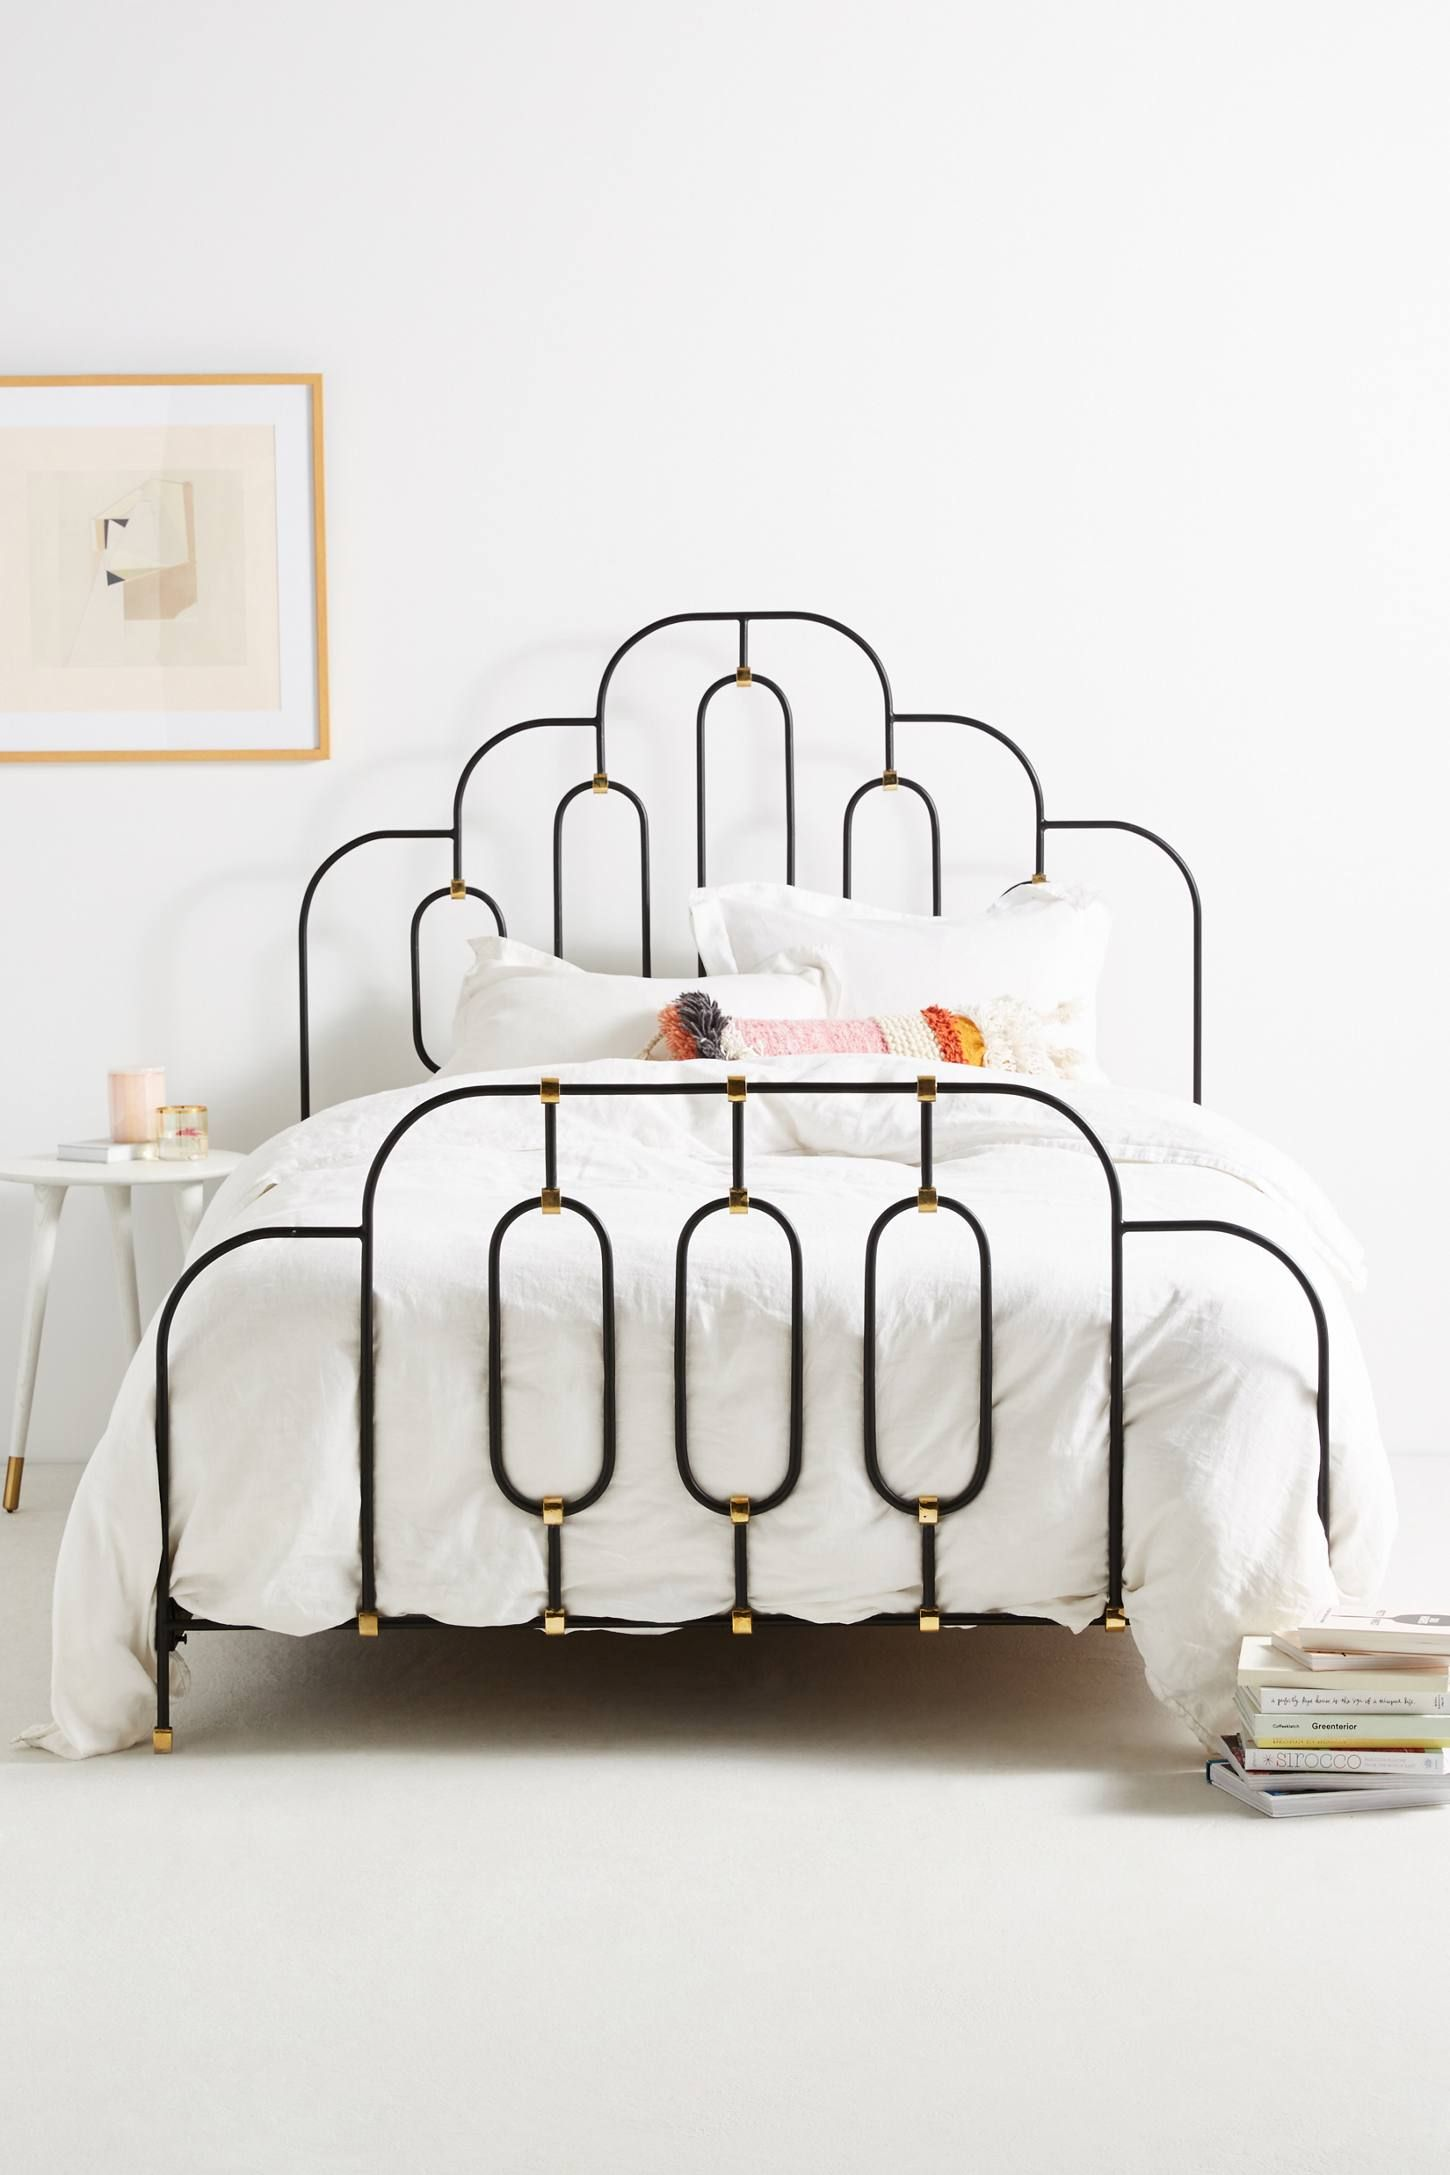 Deco bed rooms pinterest bedroom bedroom decor and home decor